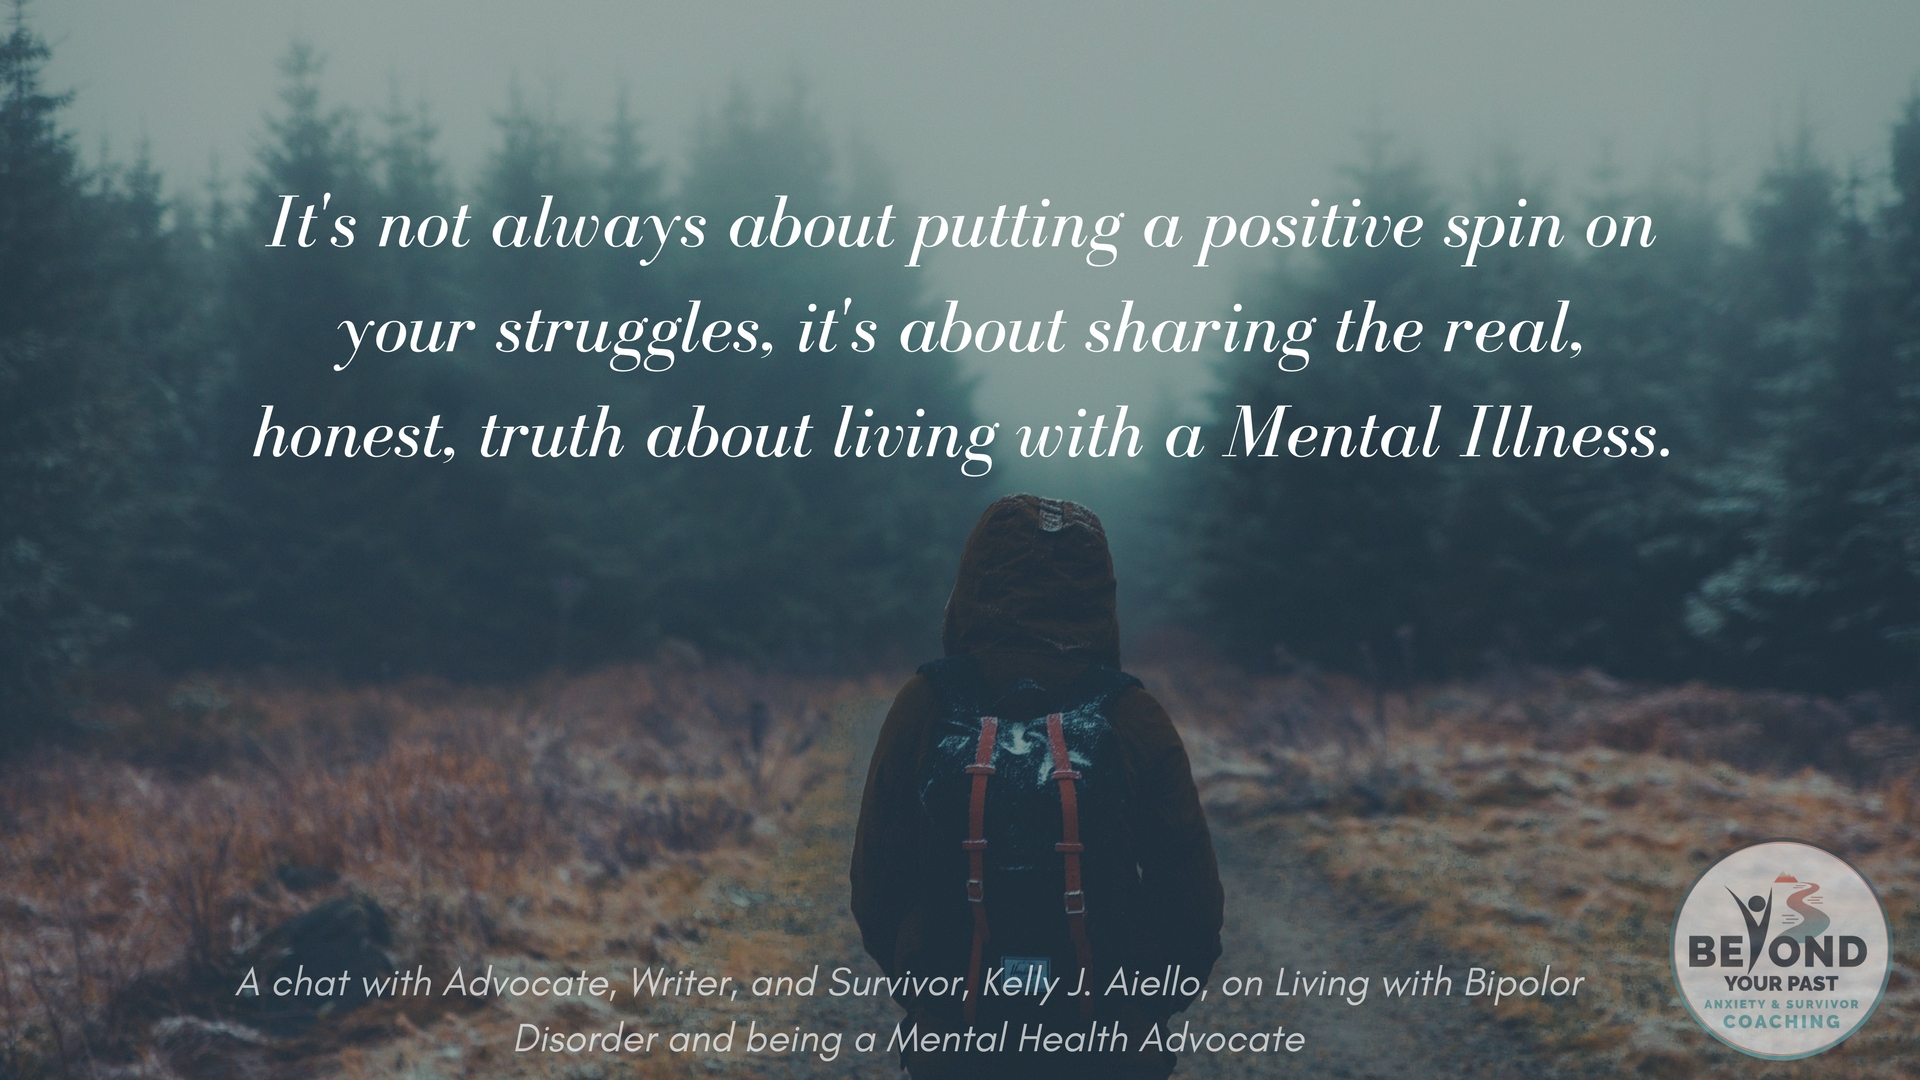 Living with Bipolor Disorder and being a Mental Health Advocate - Kelly J Aiello